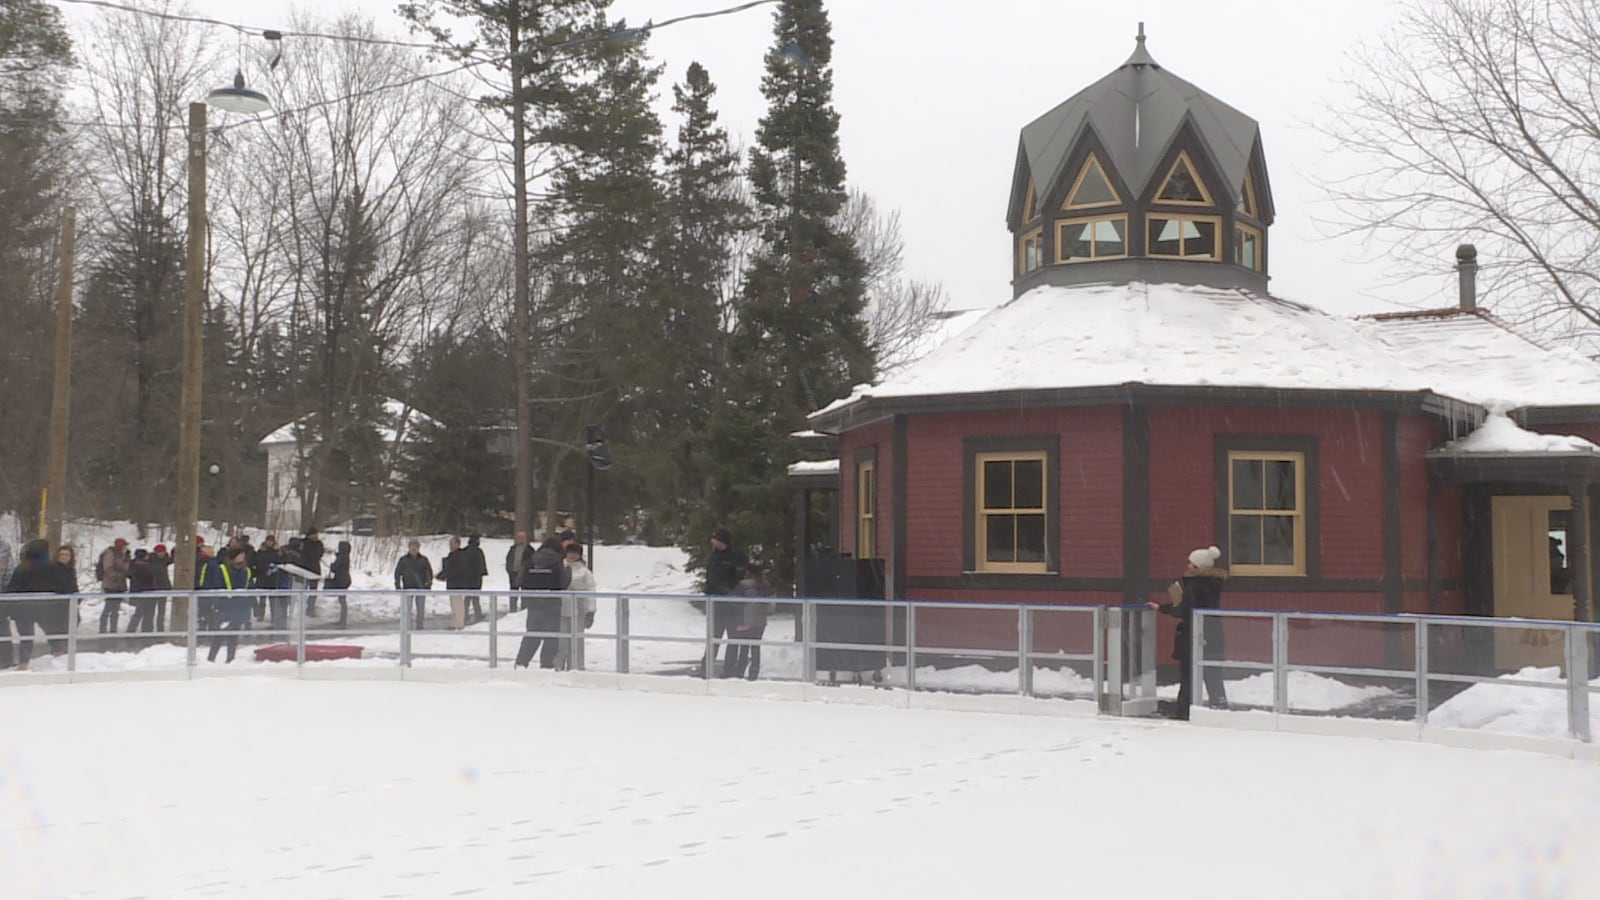 La patinoire de Rideau Hall